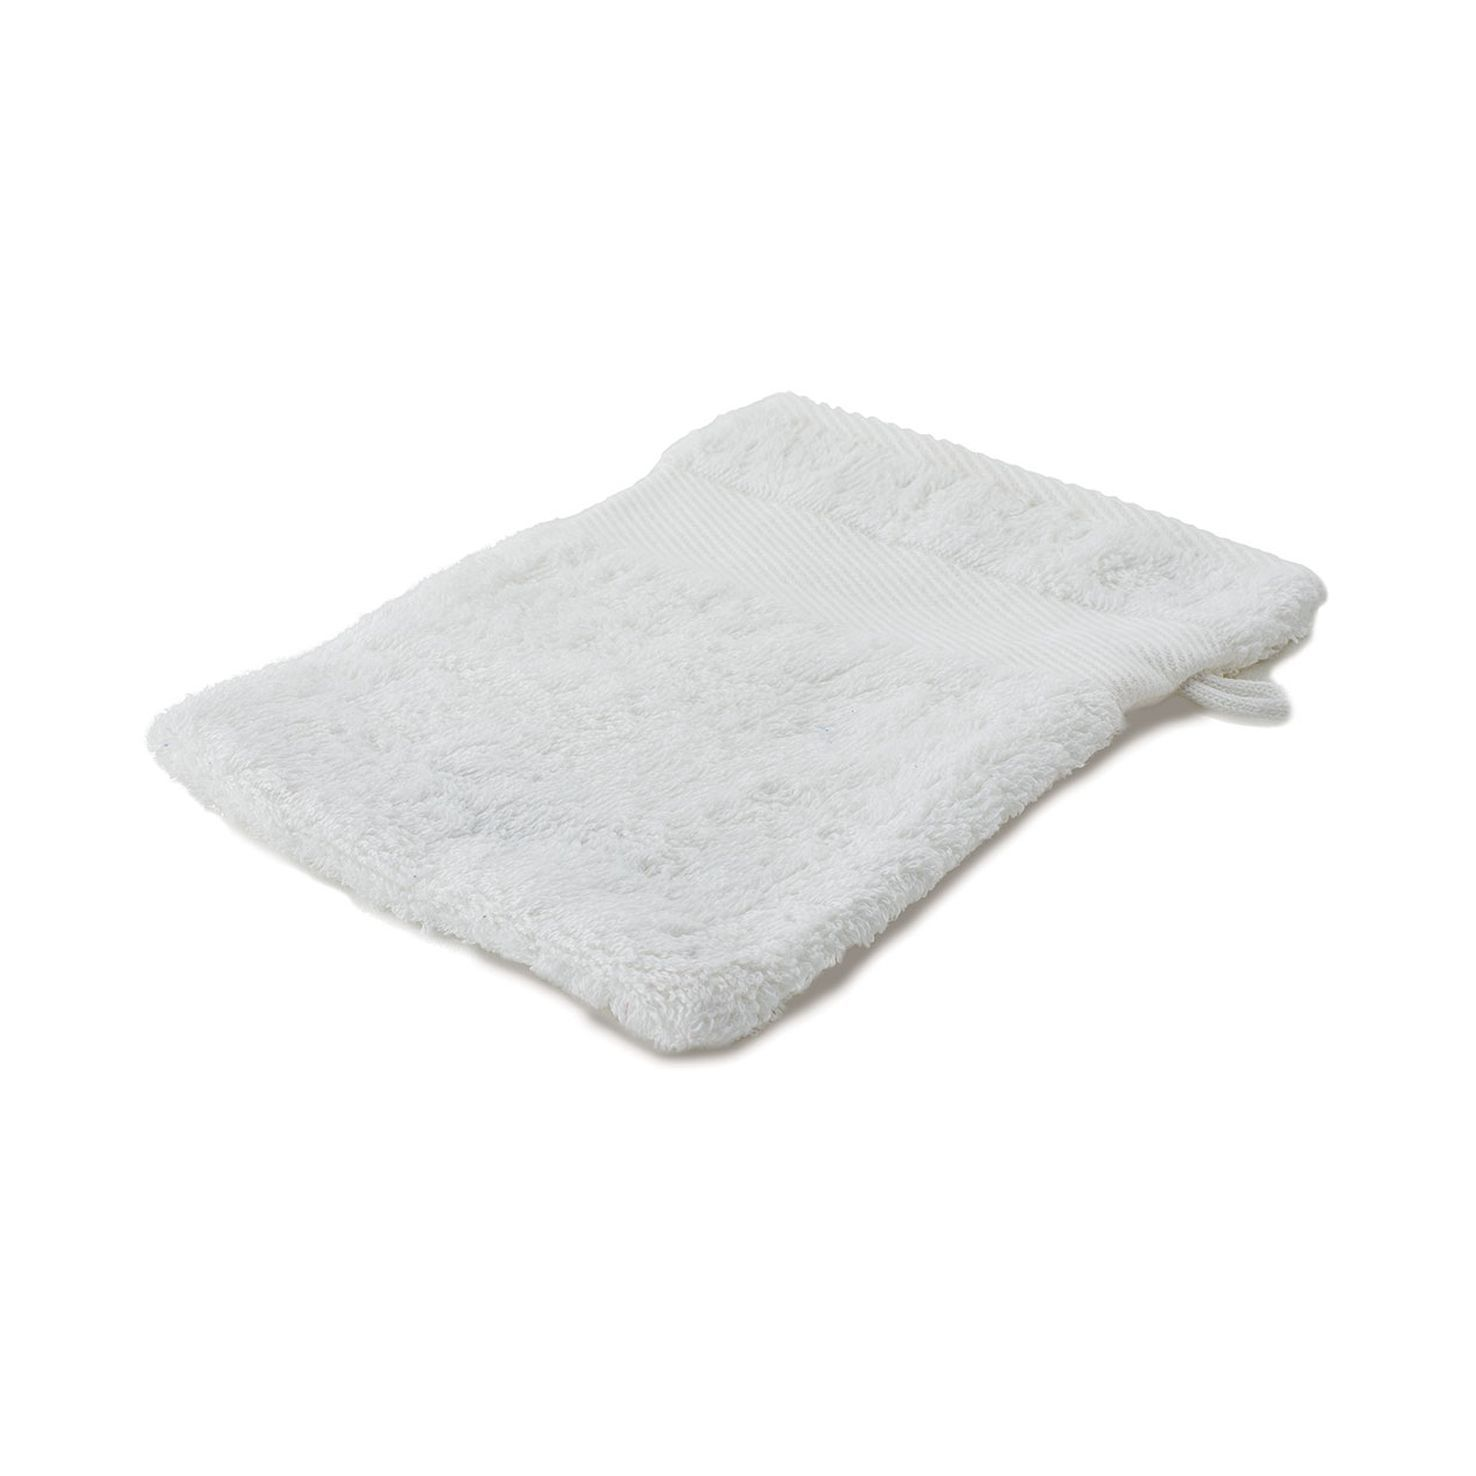 Witte Washandjes borduren | 450 grams